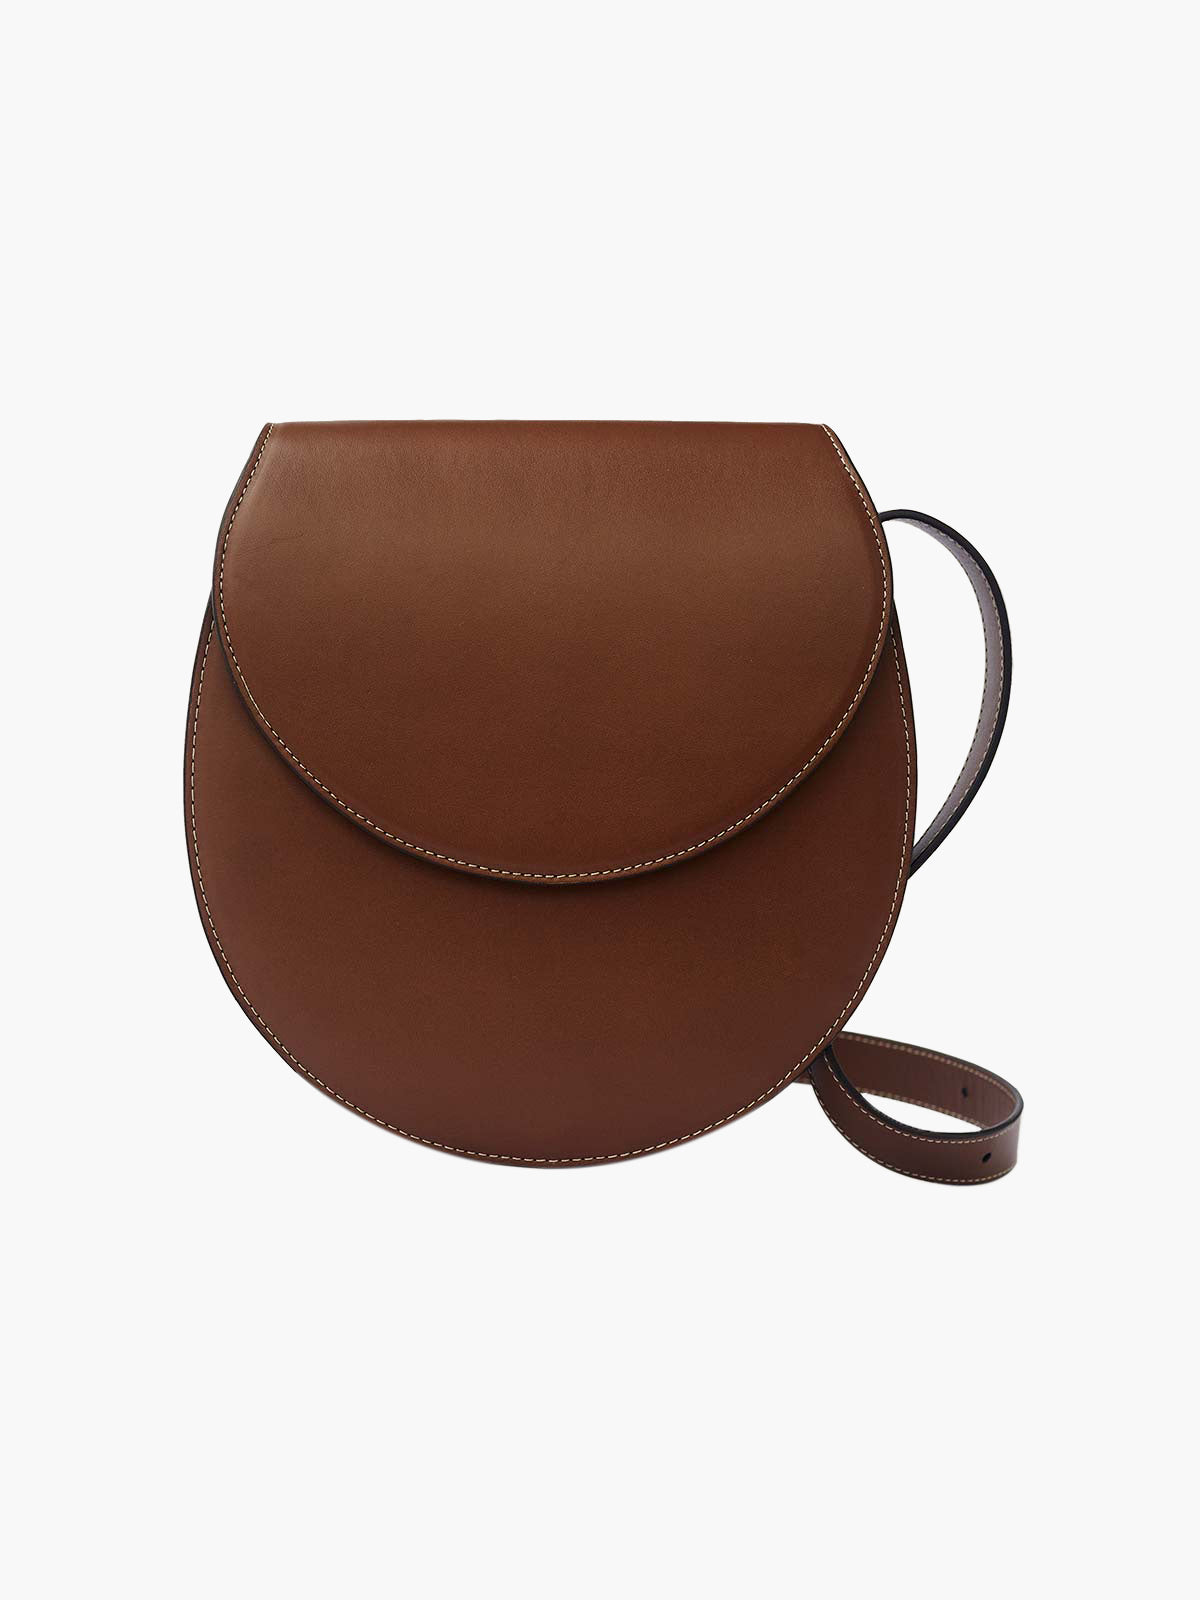 Large Saddle Bag | Cognac